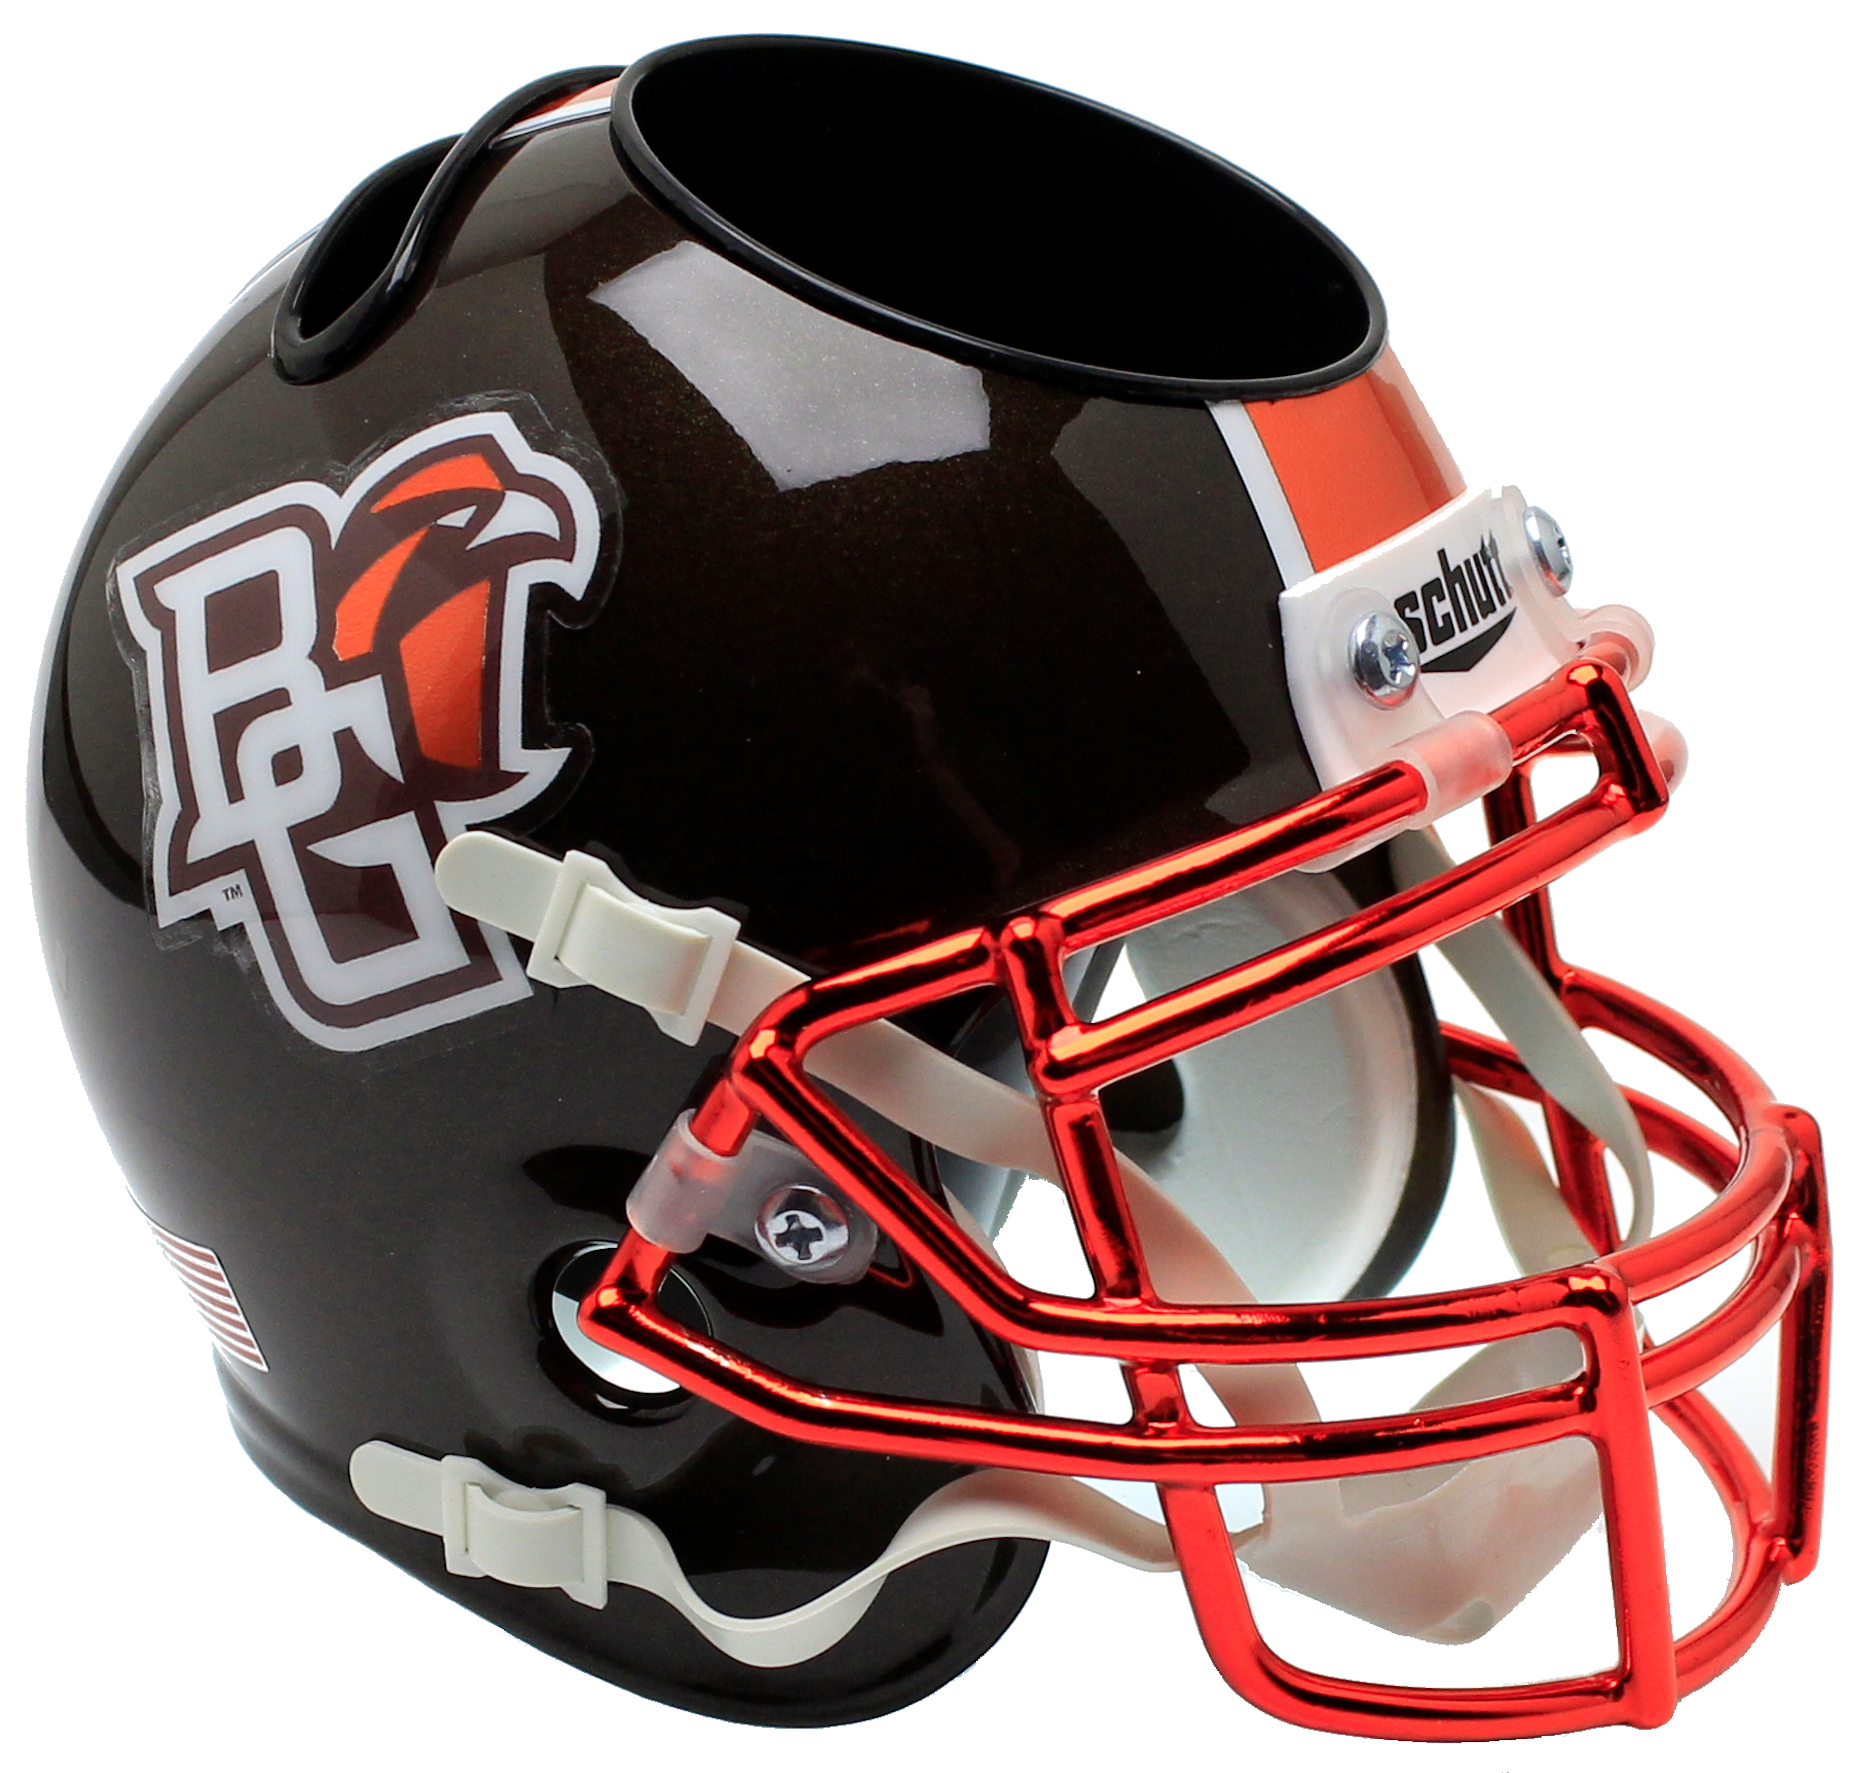 Bowling Green Falcons Miniature Football Helmet Desk Caddy <B>Chrome Mask</B>